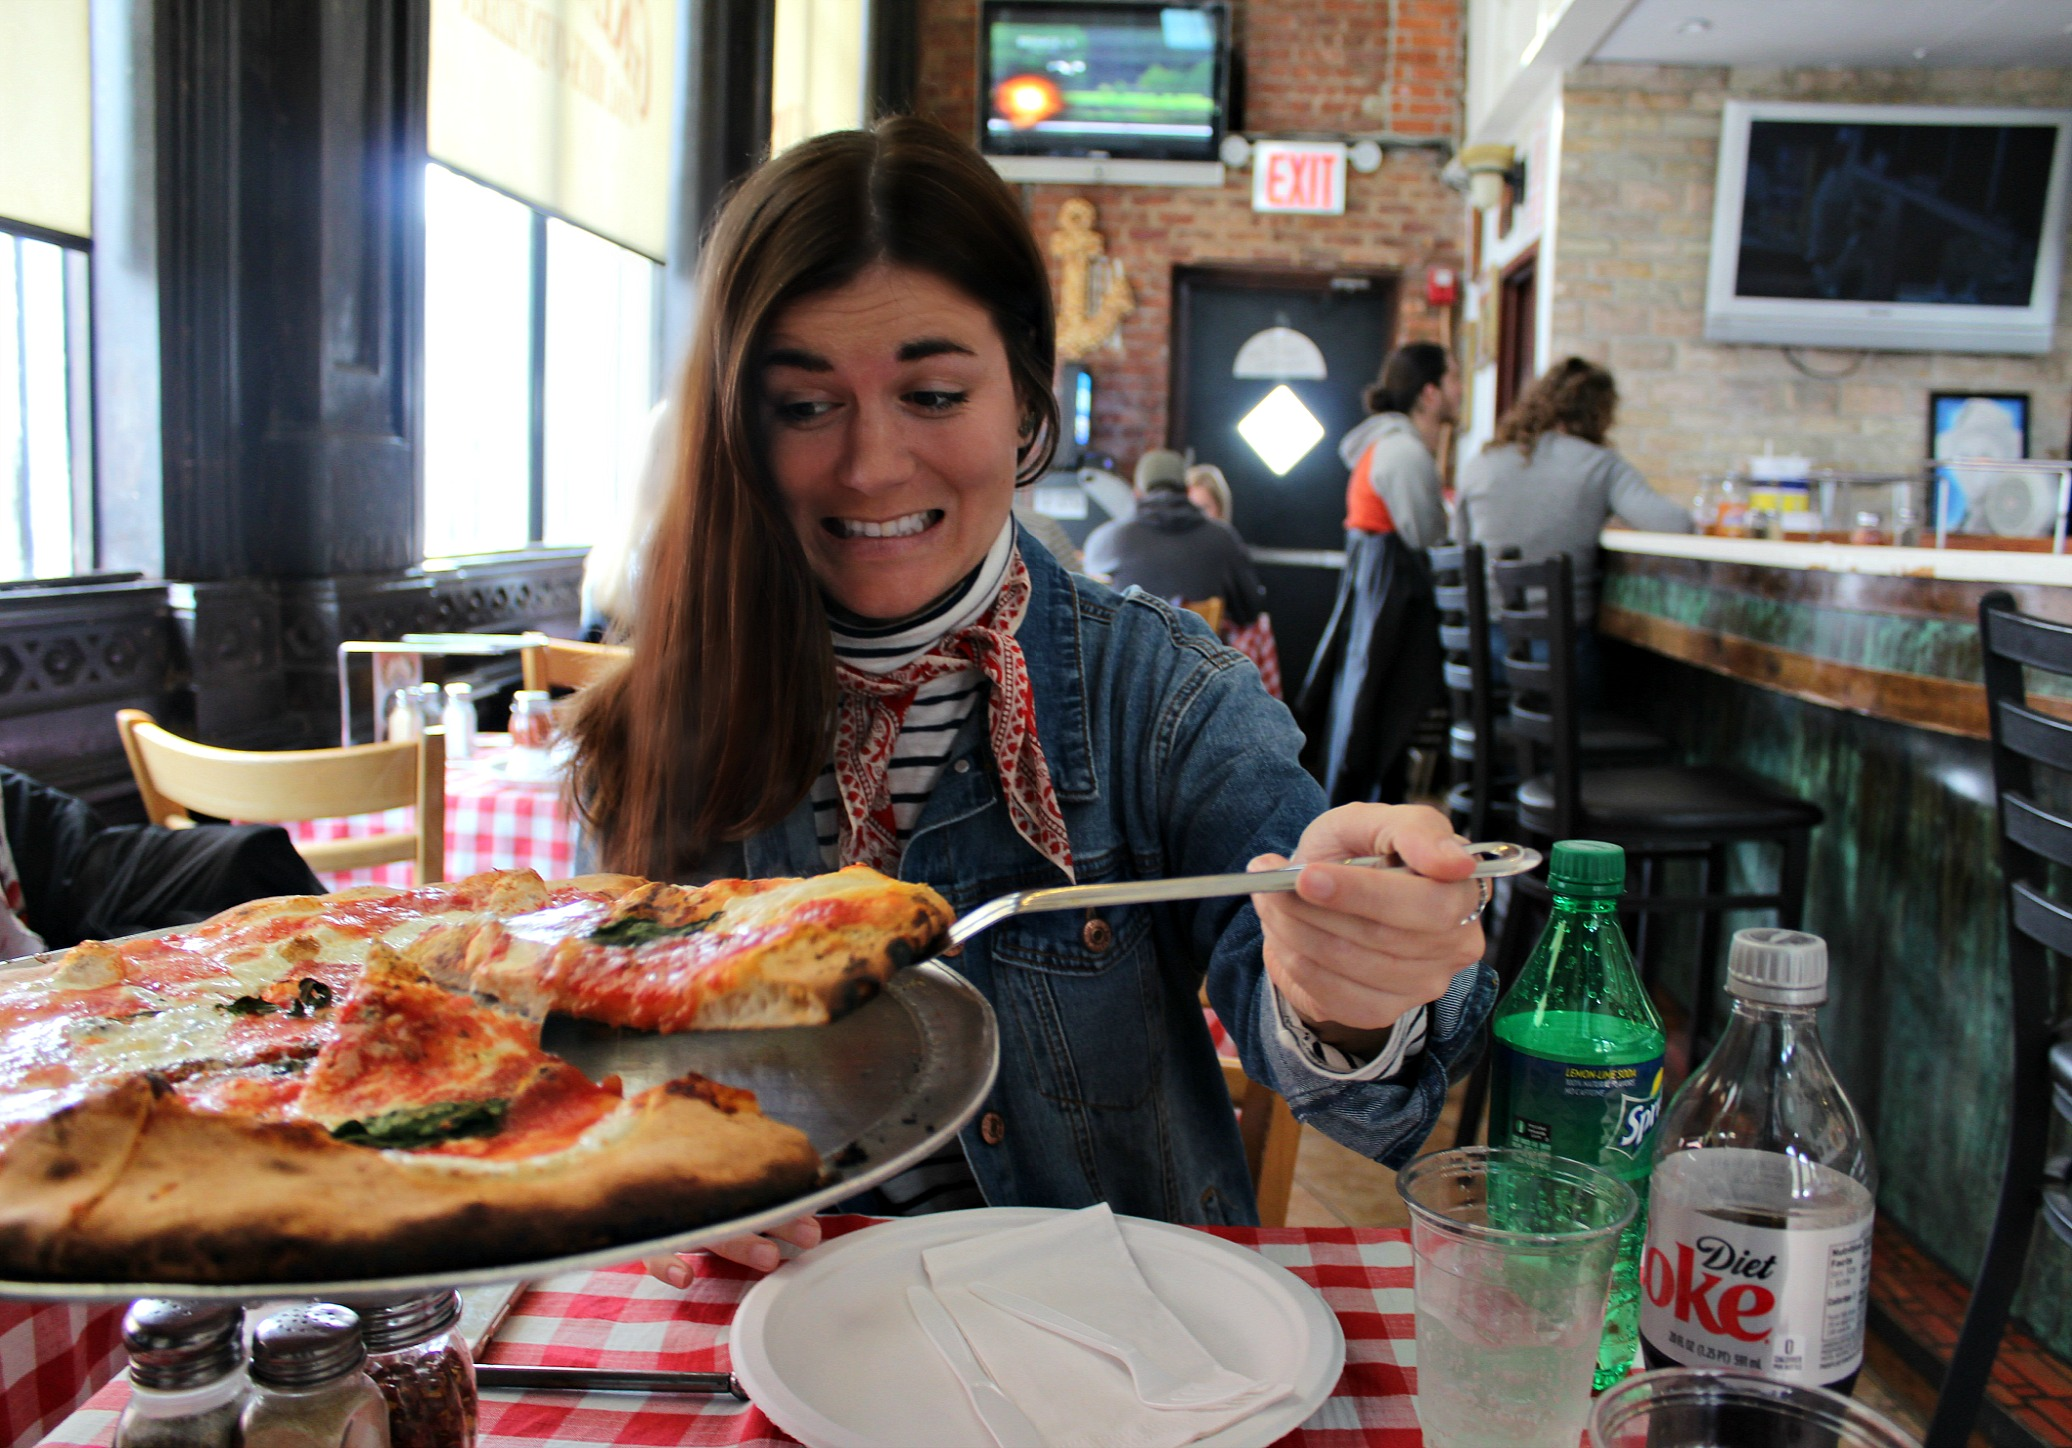 eating pizza this weekend at Grimaldi's in Brooklyn